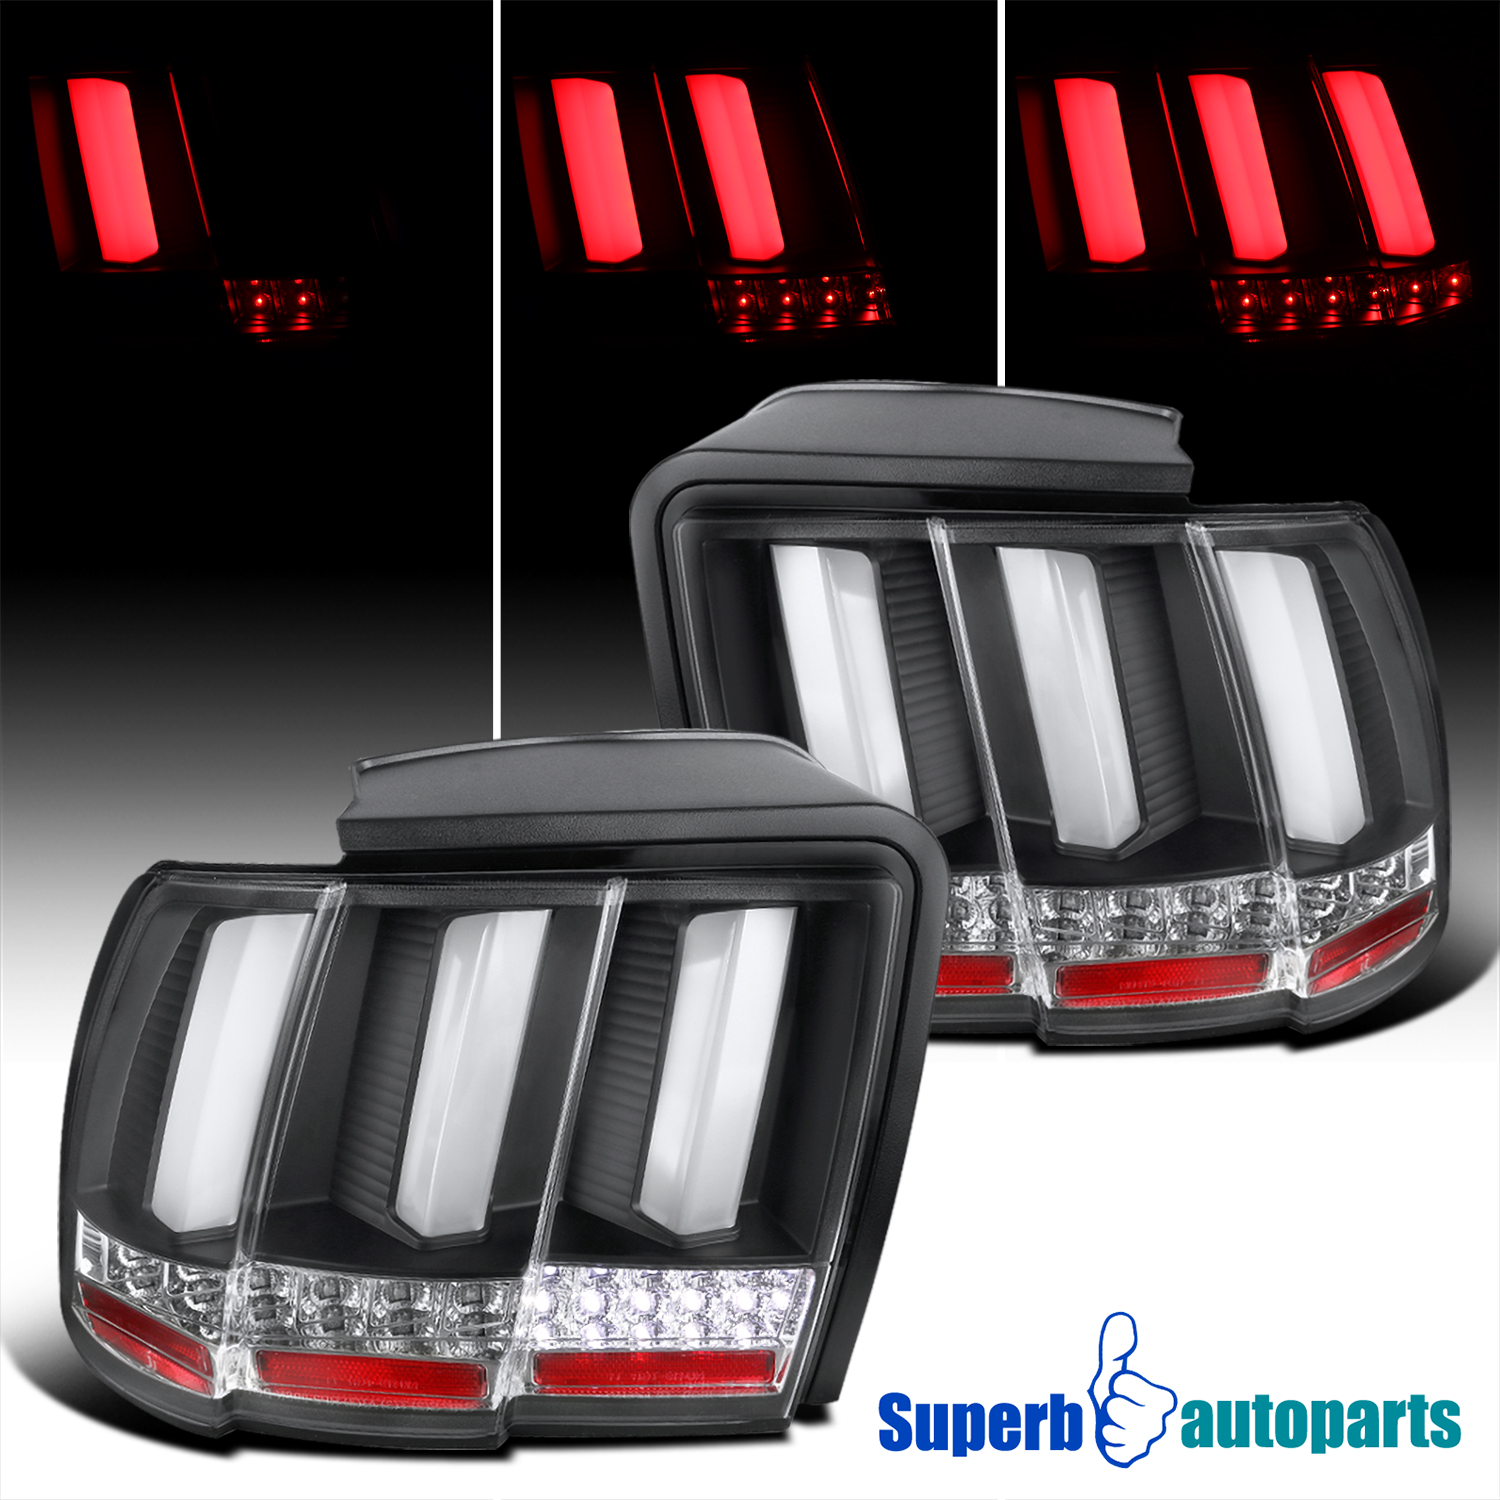 1999 2004 ford mustang sequential led tail lights brake. Black Bedroom Furniture Sets. Home Design Ideas